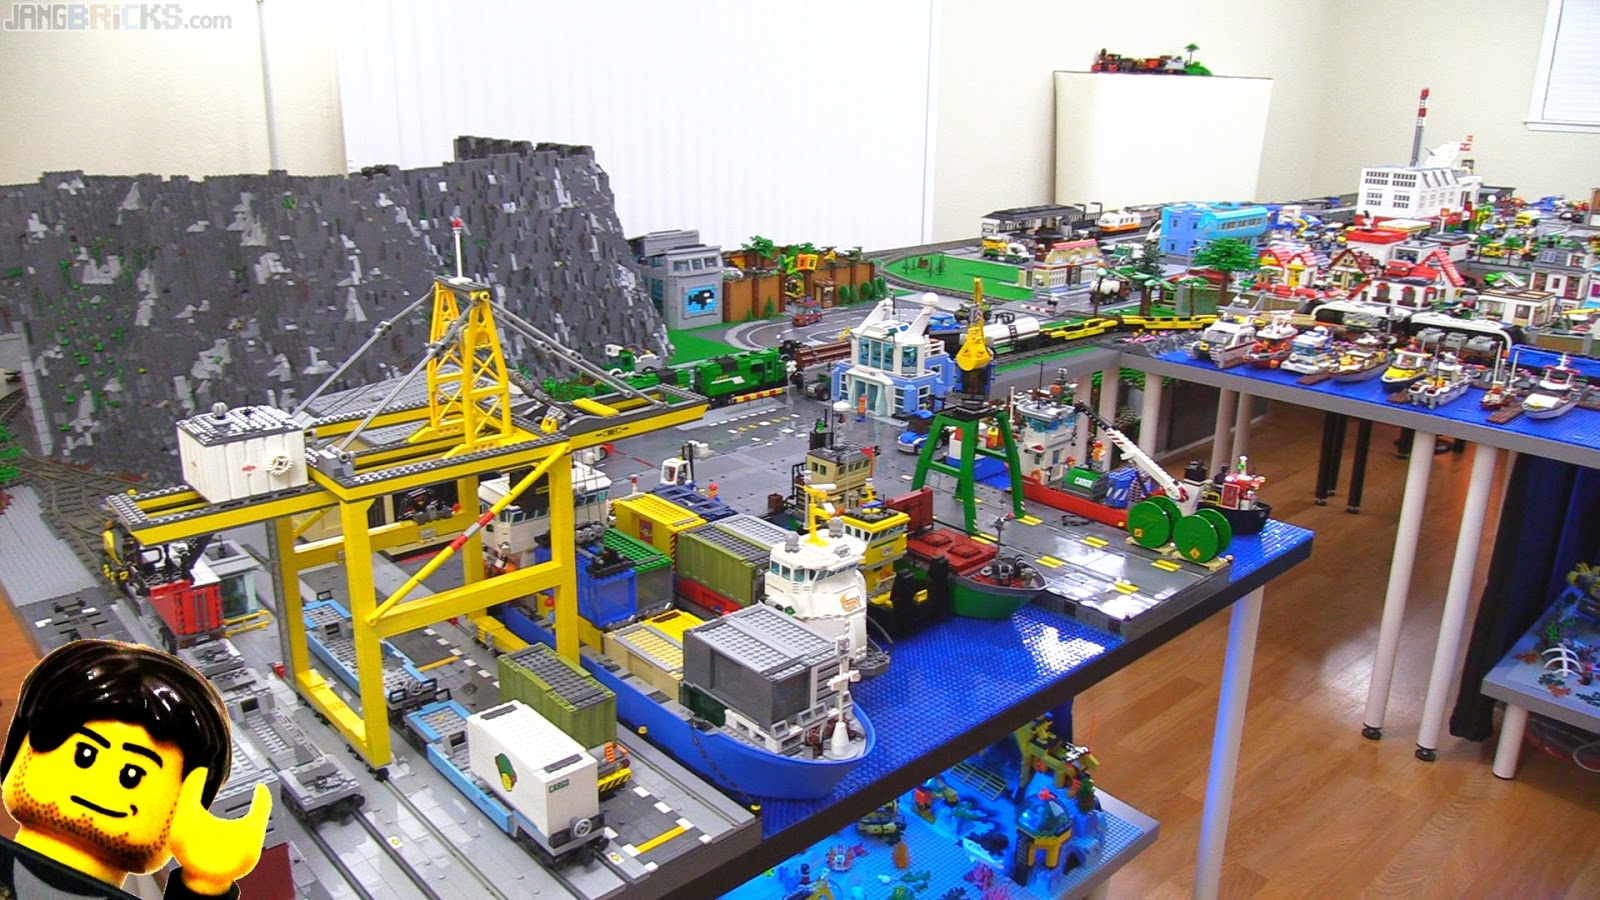 Lego City Layout Plan Queue Updated May 21 2019